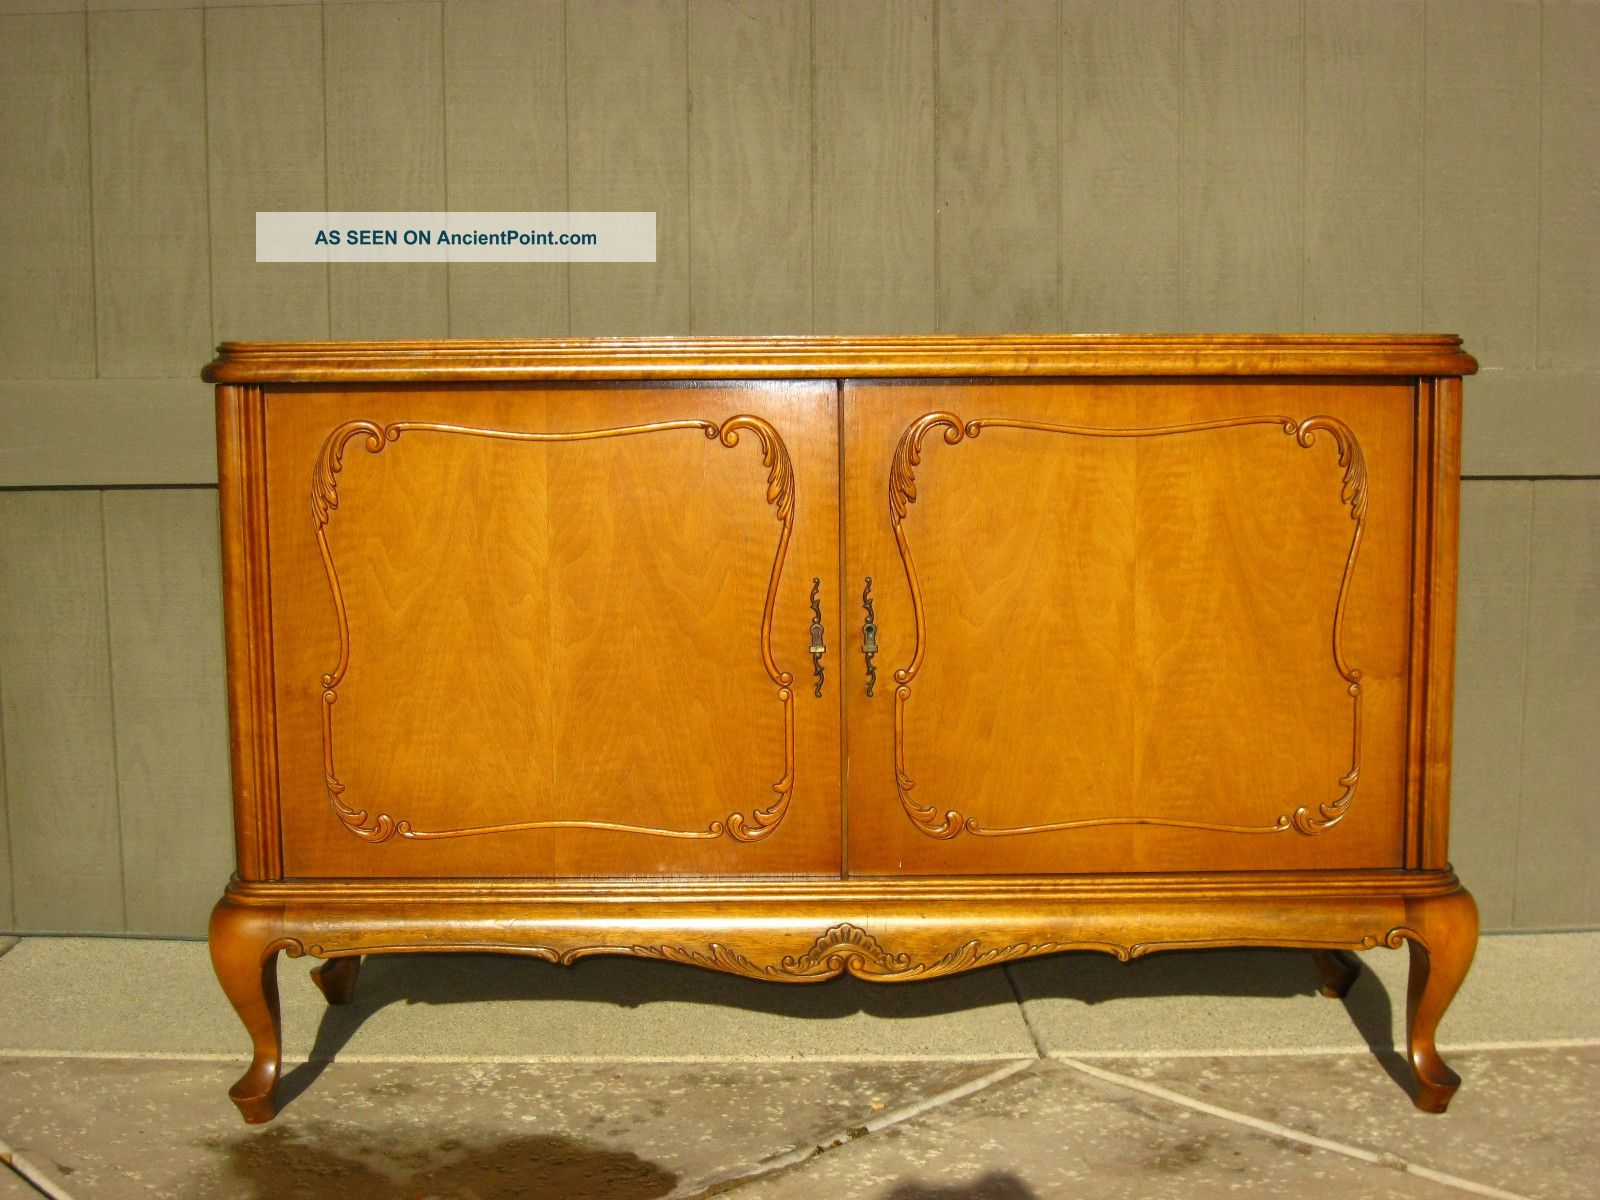 Vintage French Provincial Buffet Sideboard Credenza Chic French Country Cottage Post-1950 photo